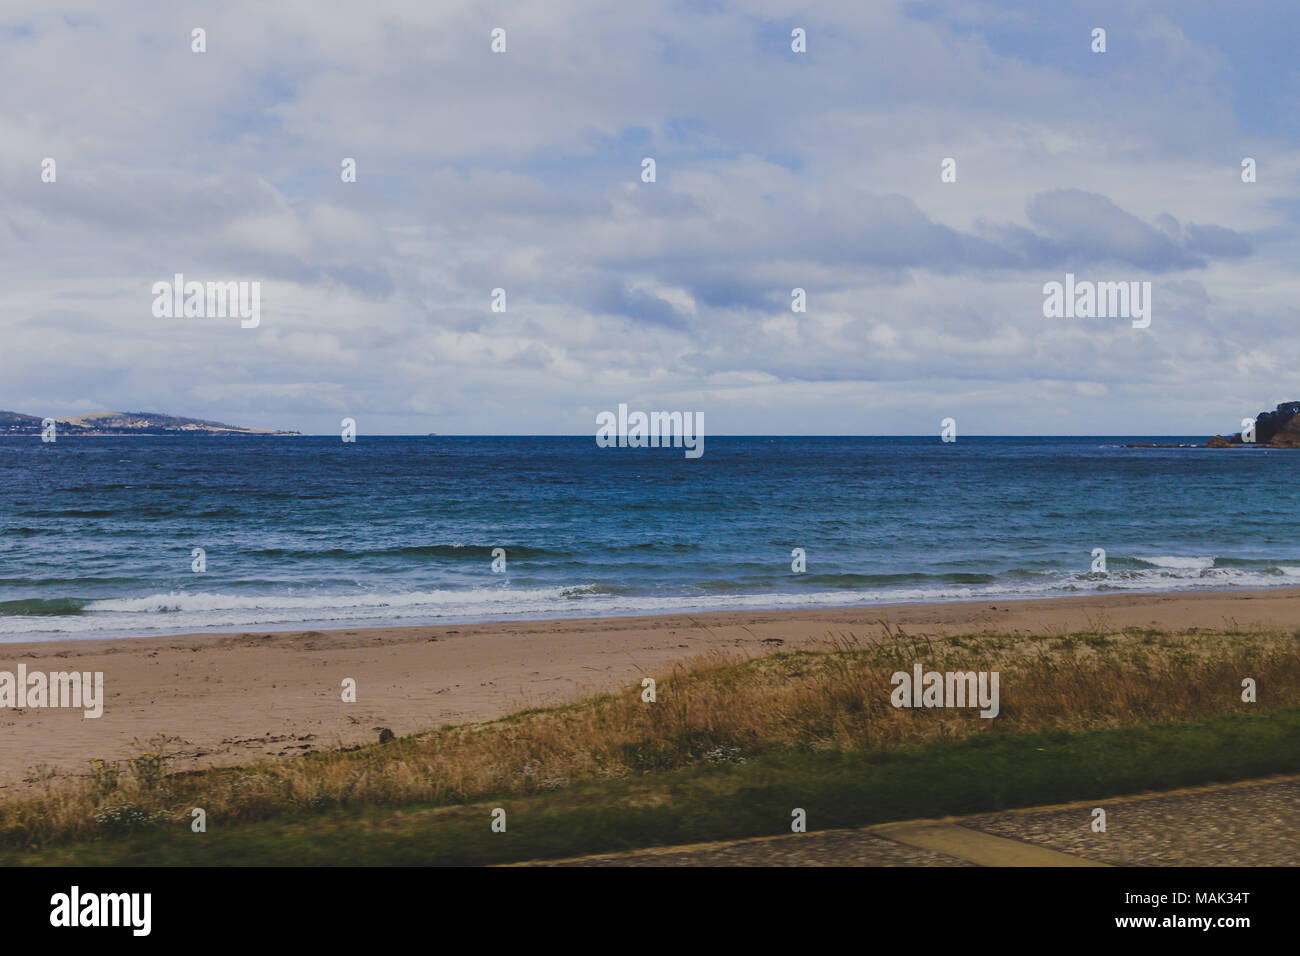 deserted beach in Hobart, Tasmania on an overcast day with slightly muted tones - Stock Image